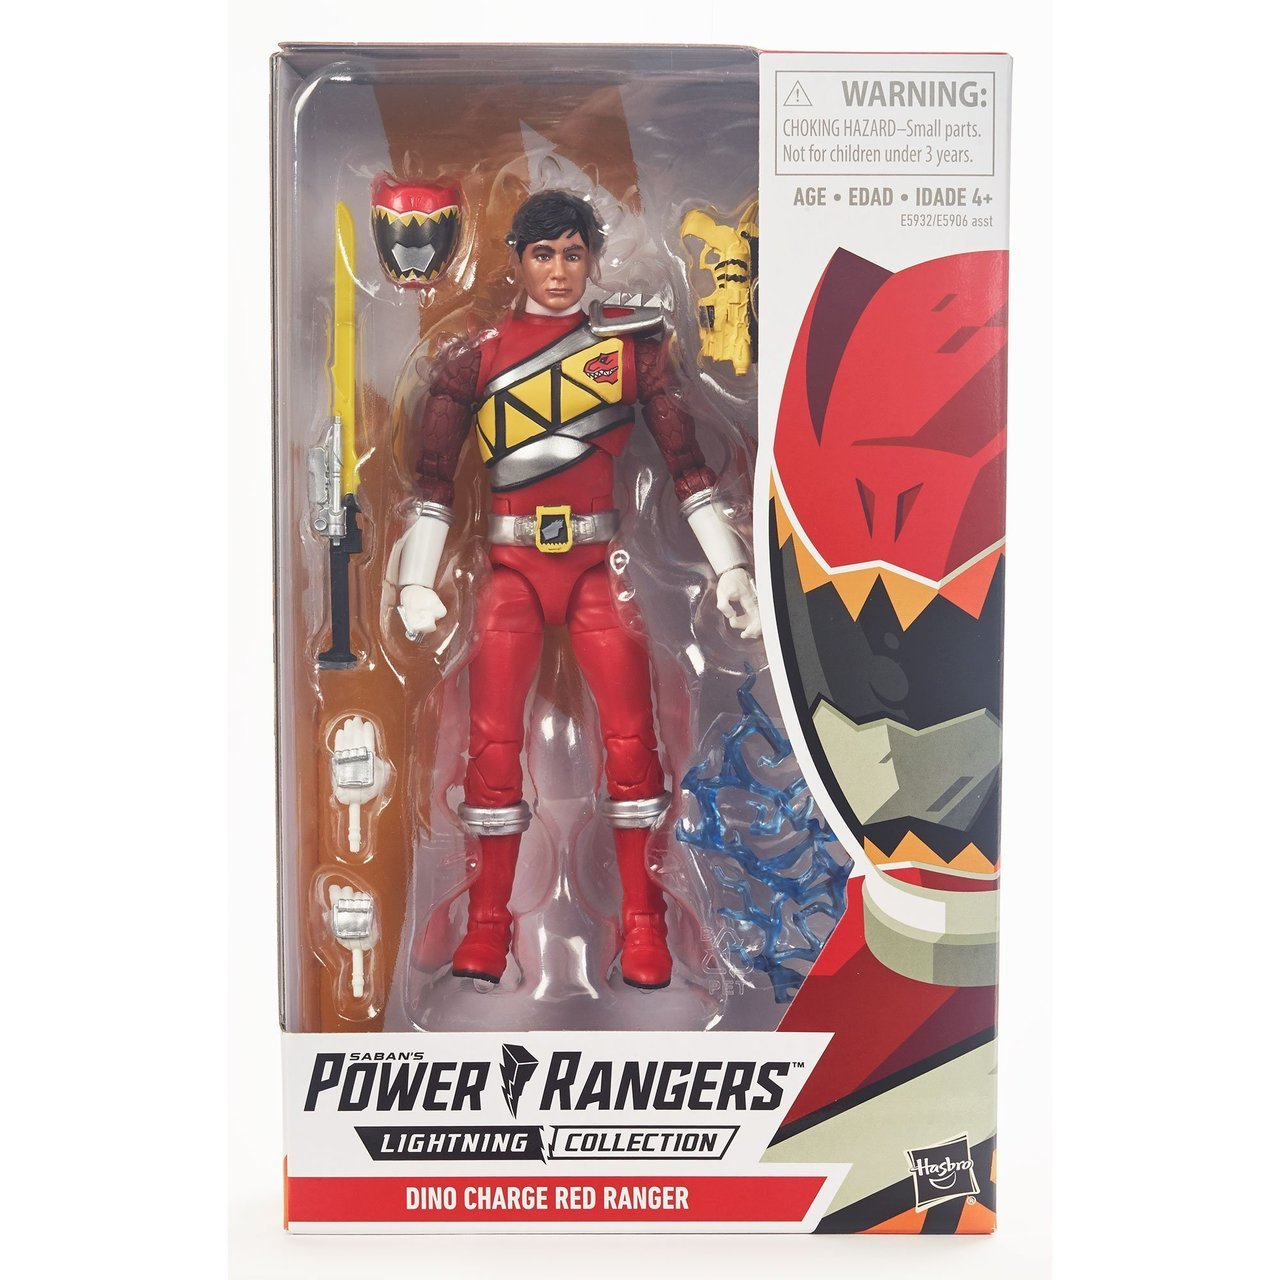 Lightning Collection - Power Rangers Dino Charge Red Ranger